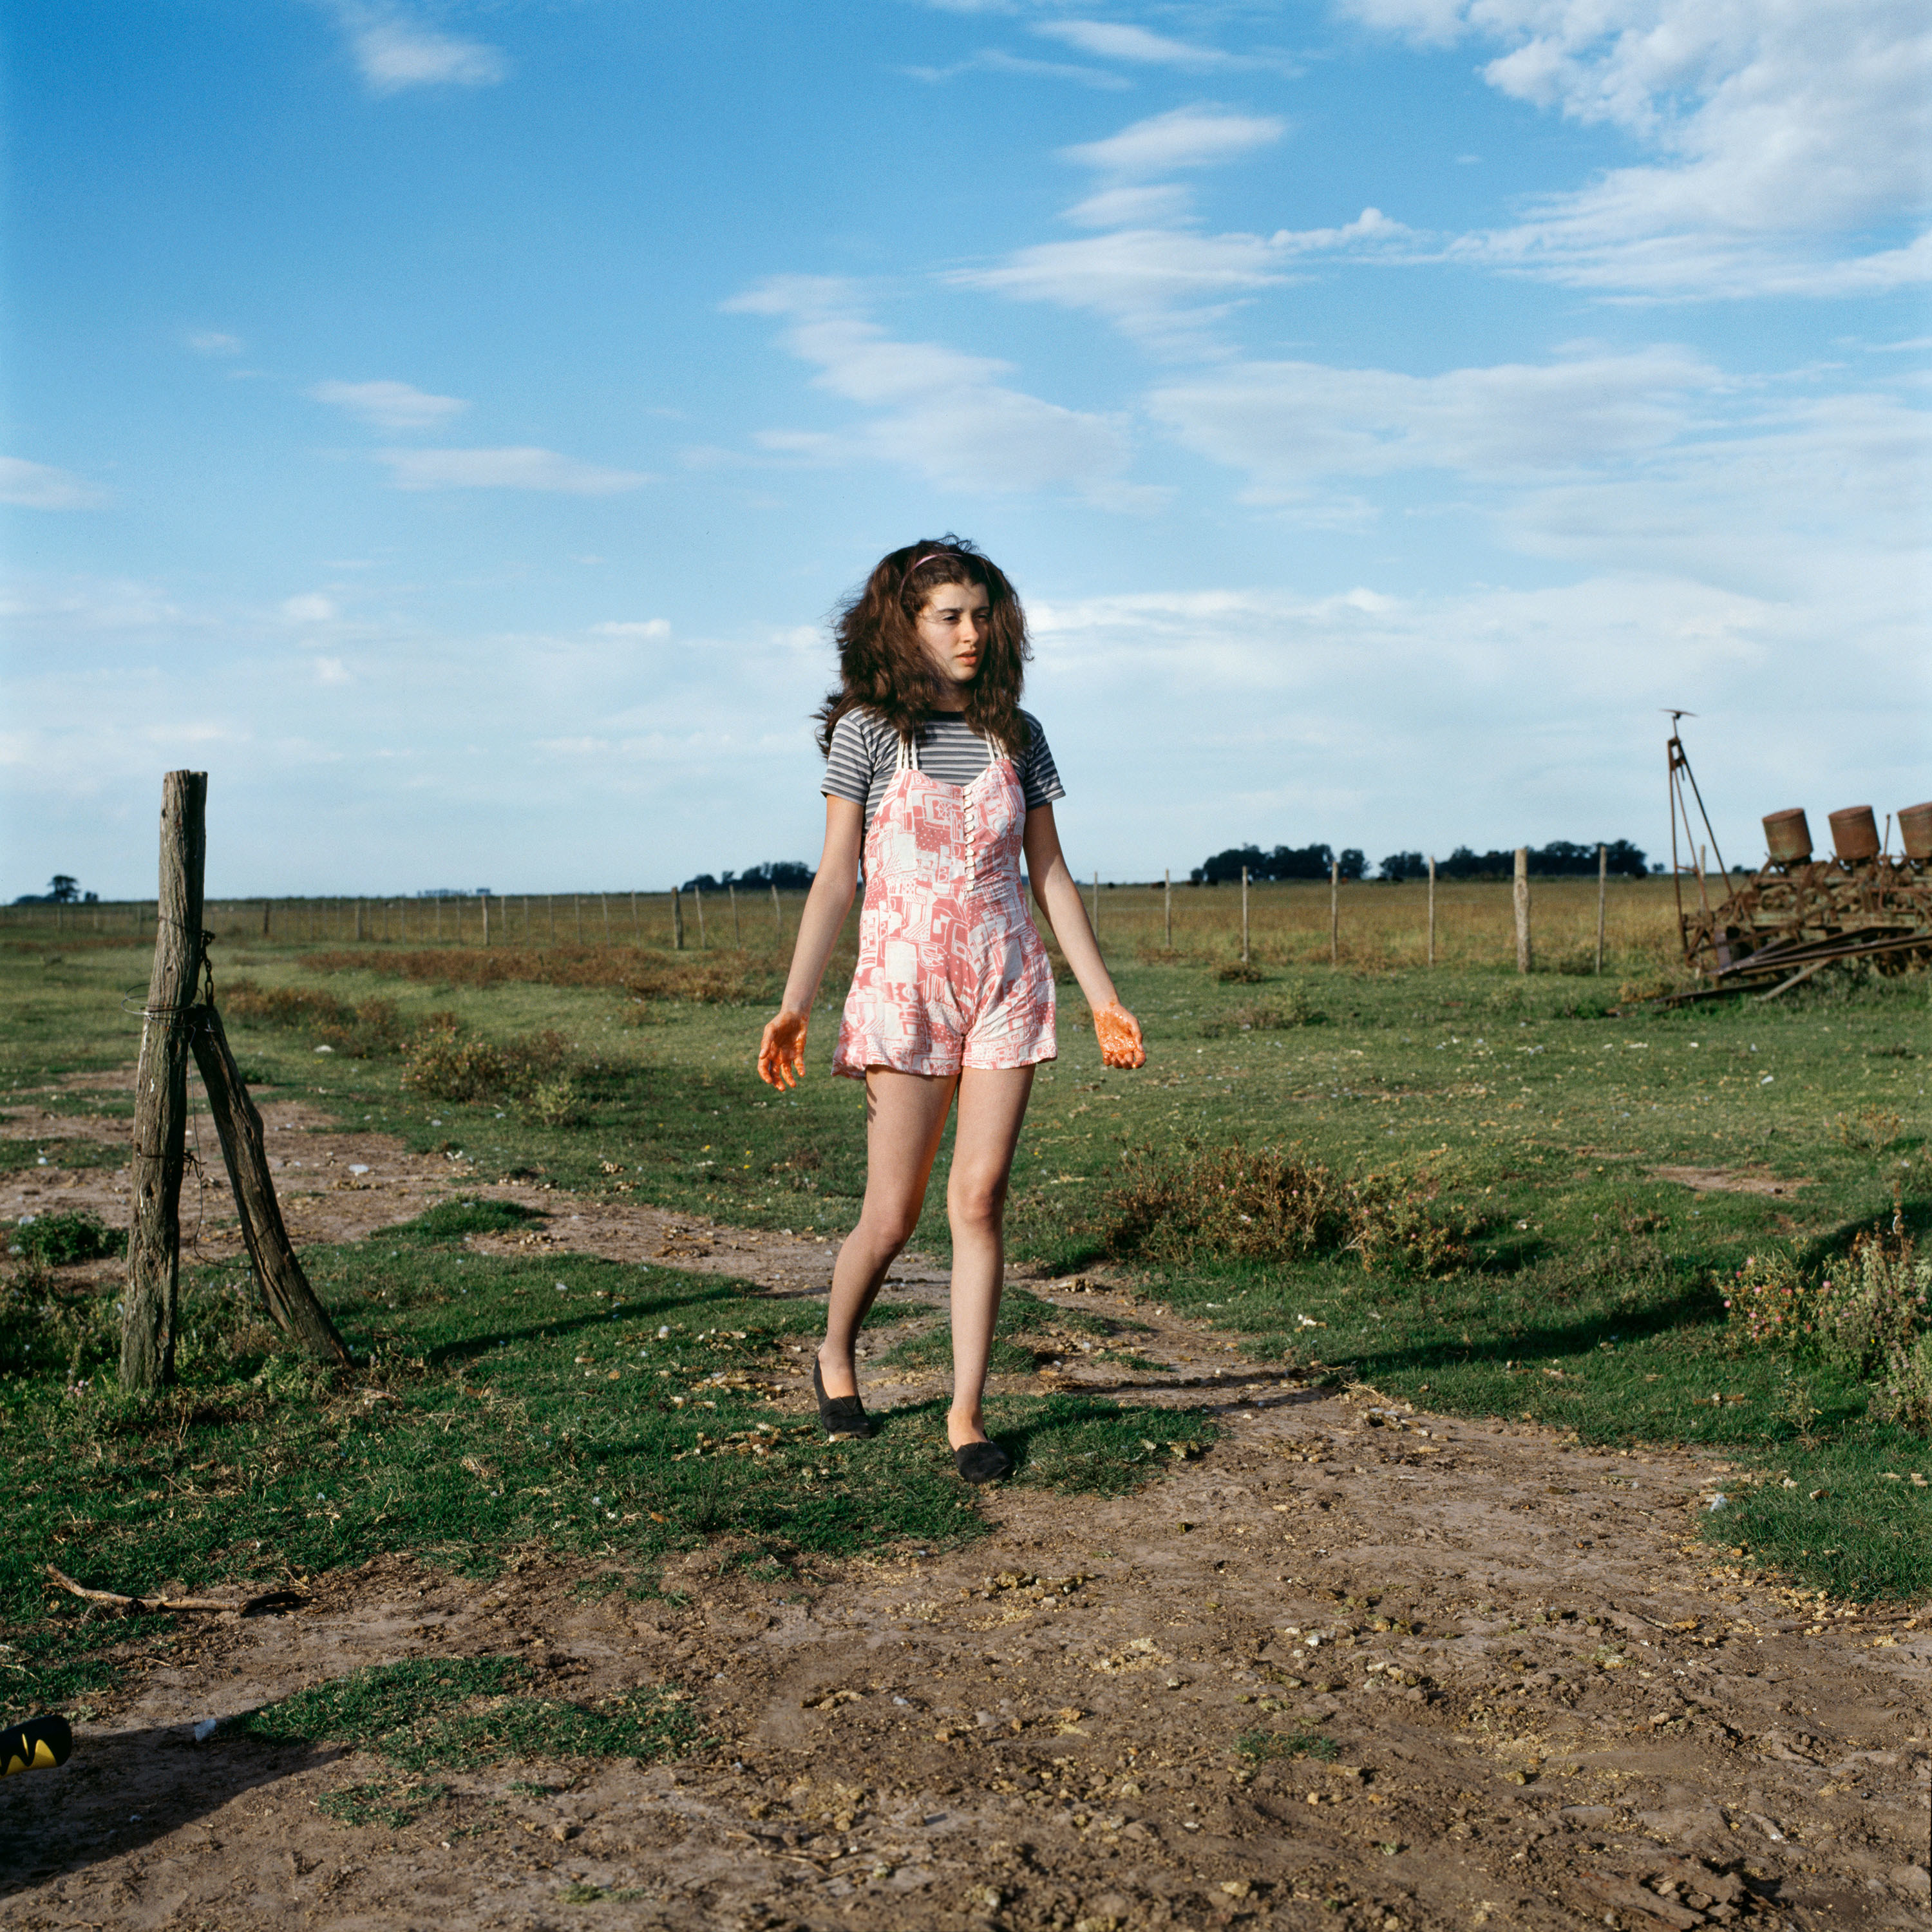 A girl in a striped shirt and pink romper walks through a field under a blue sky